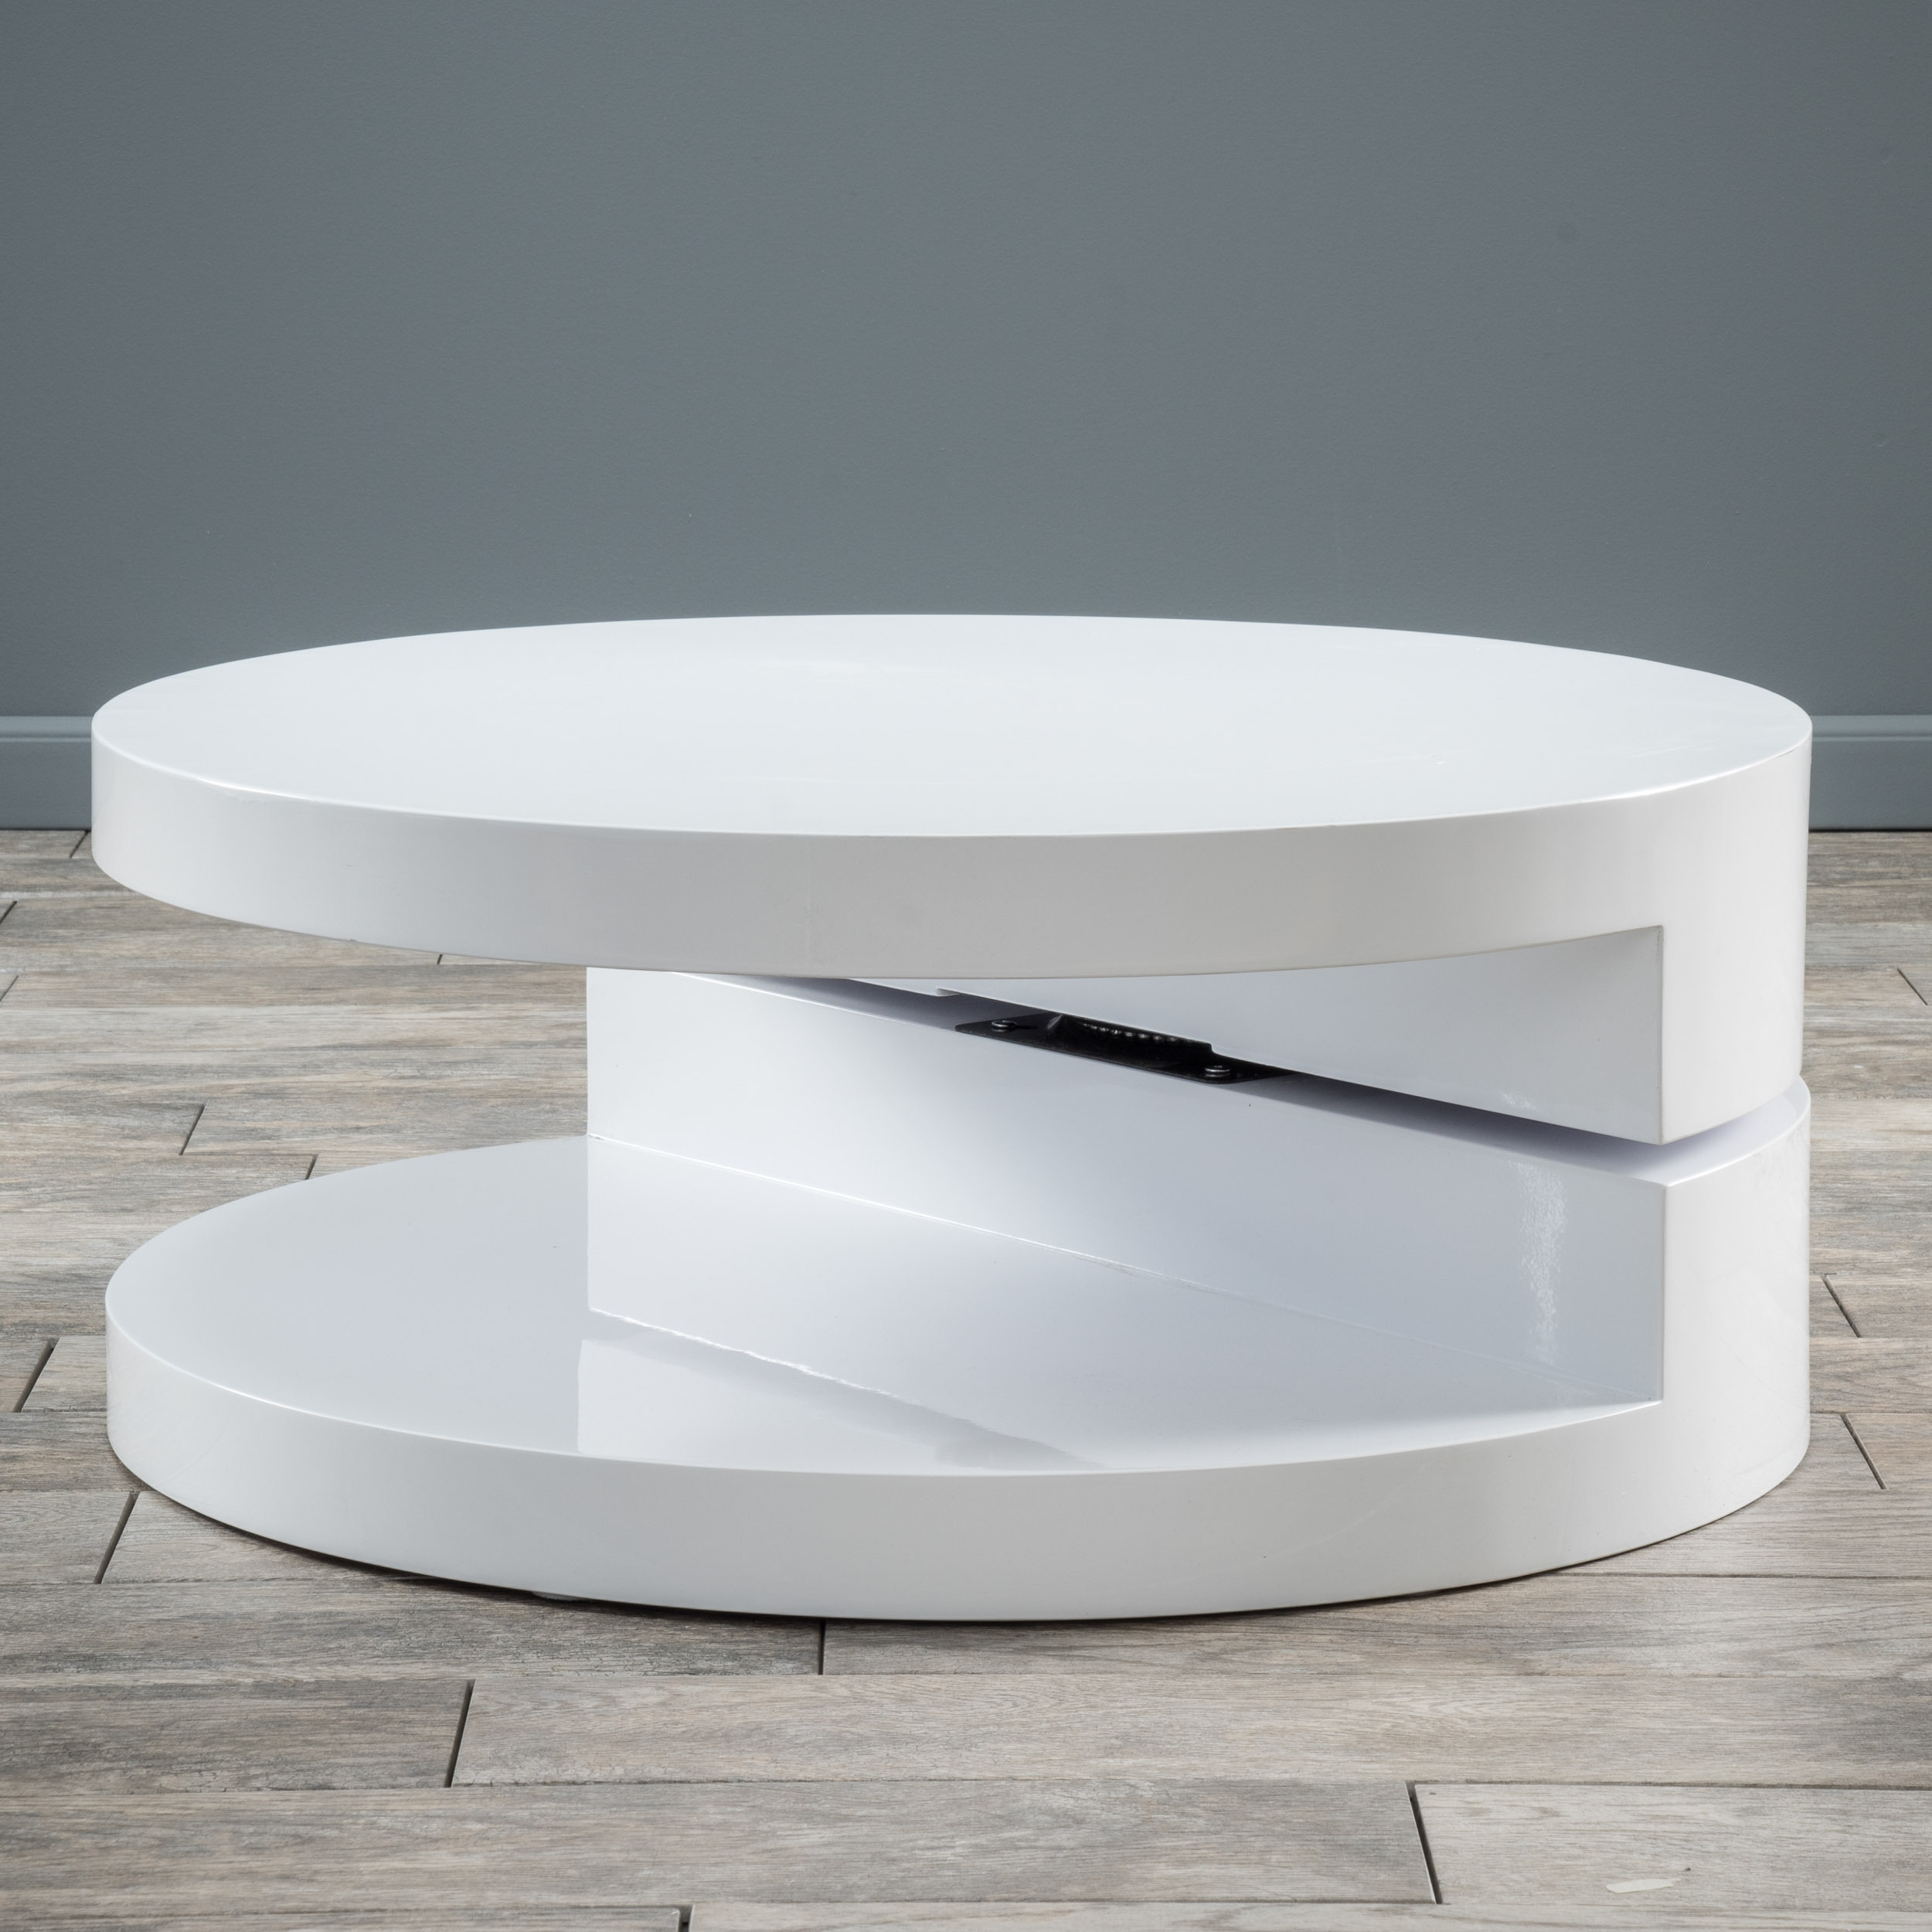 Alluring White Round Table Wood Material Glossy Finish Coffee Table regarding Spin Rotating Coffee Tables (Image 5 of 30)